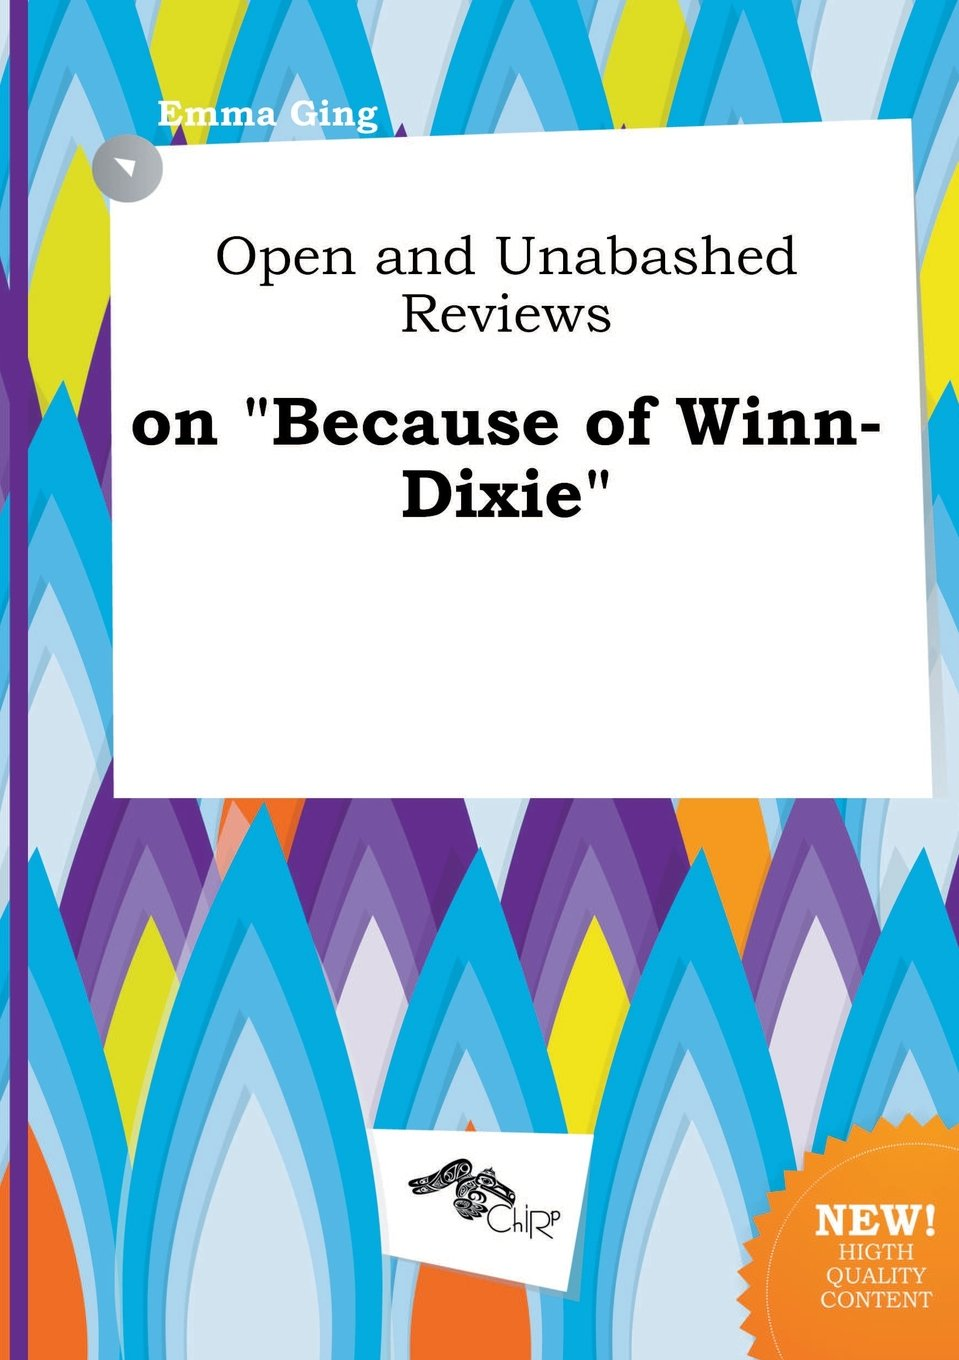 Open and Unabashed Reviews on Because of Winn-Dixie: Emma Ging ...